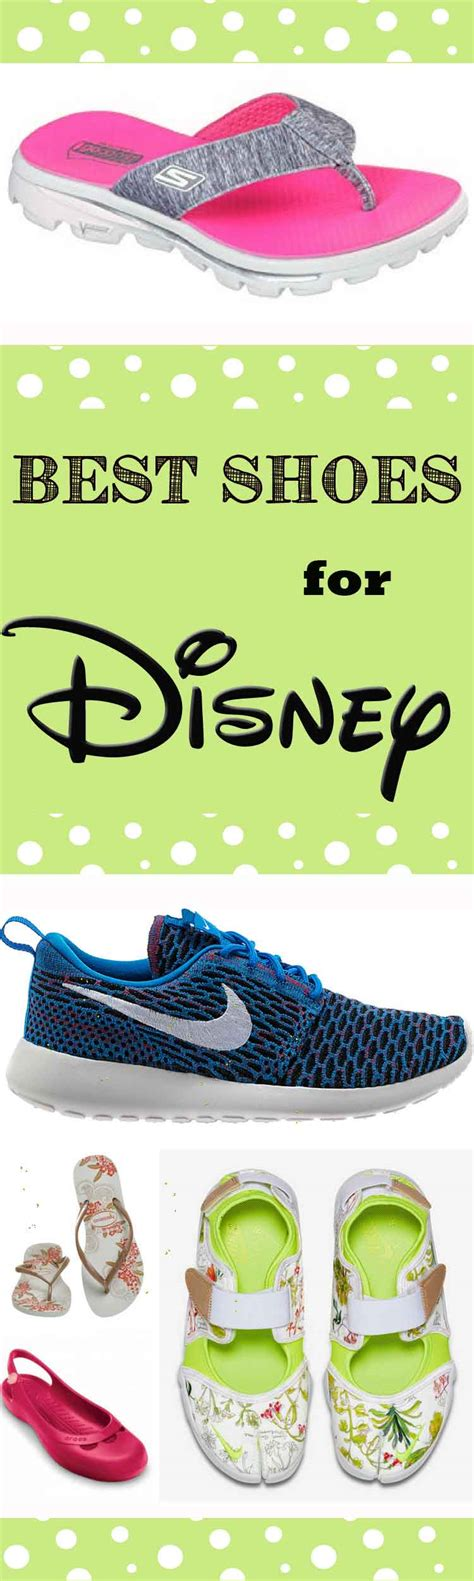 comfortable shoes for disney world best shoes for disney world be comfortable in the parks